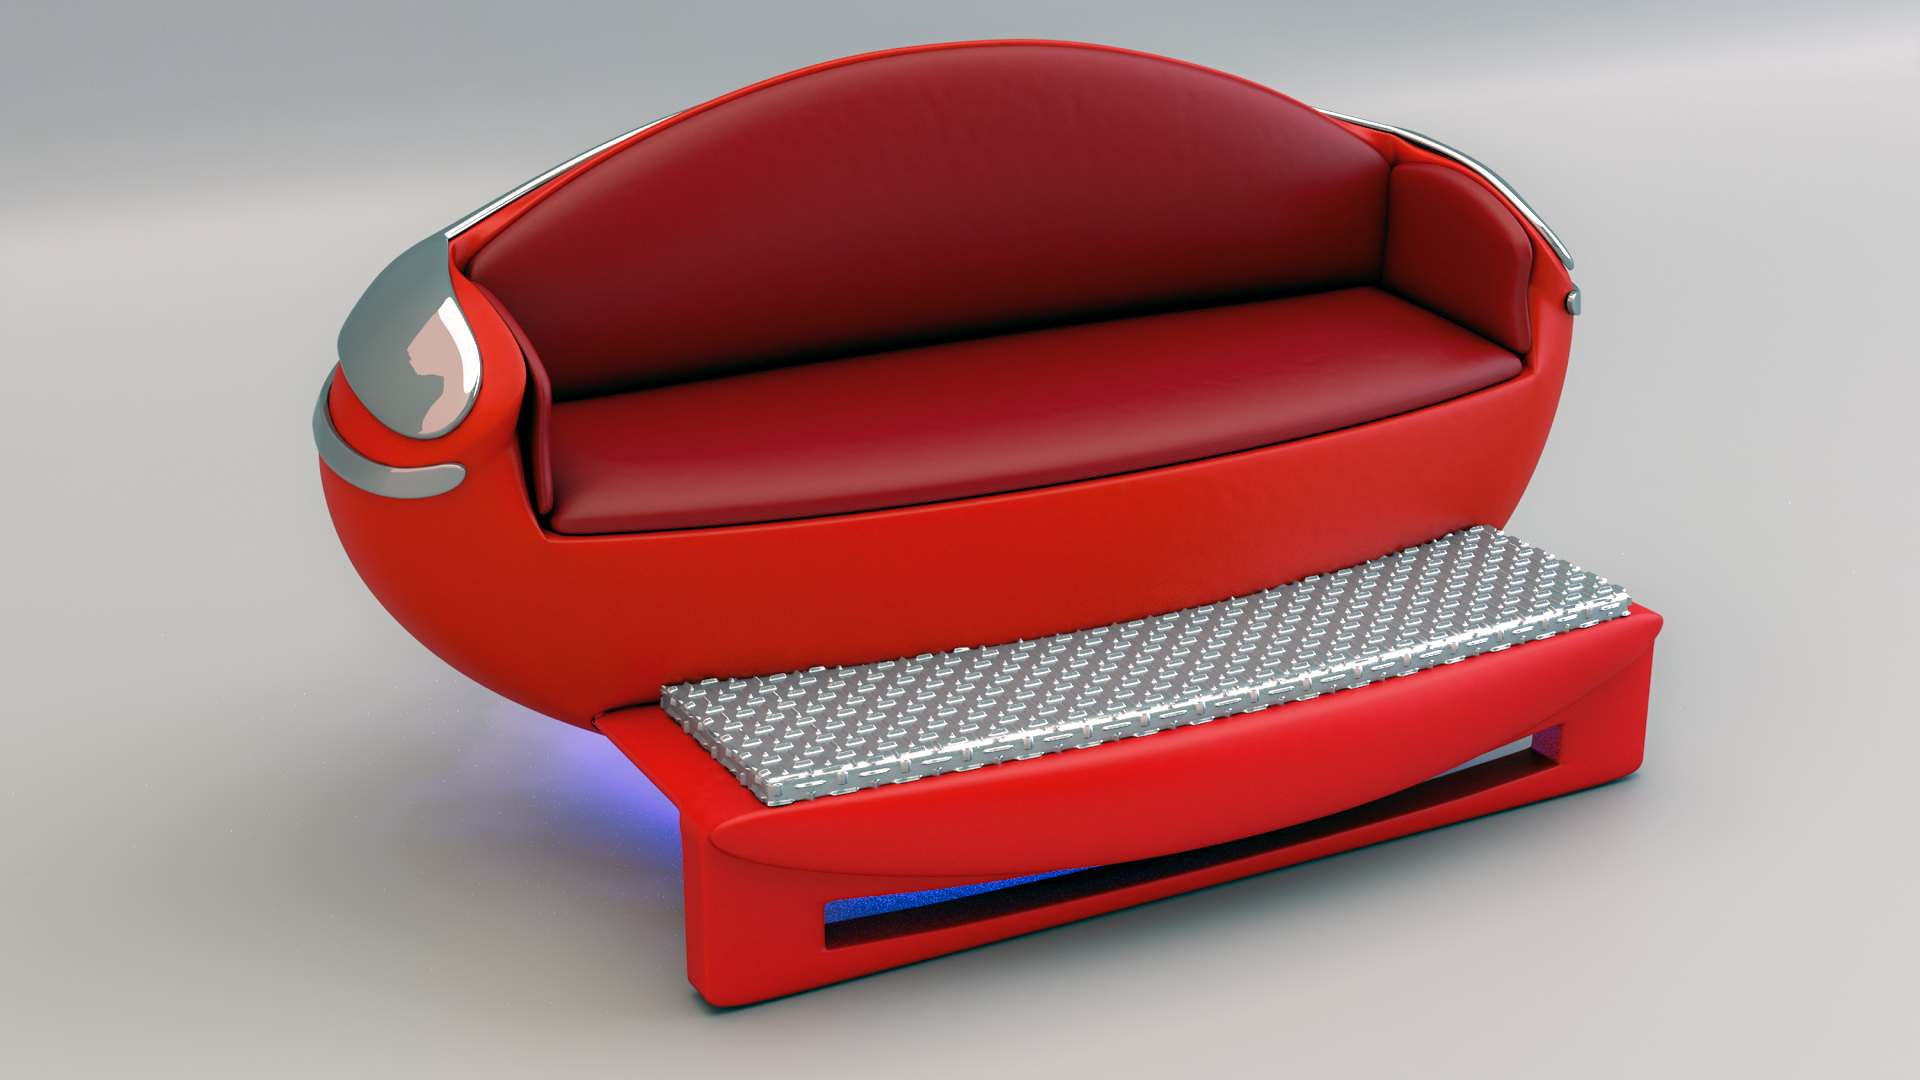 industrialdesign14 Industrial Design Modeled and Rendered in Modo by Mike Grauer